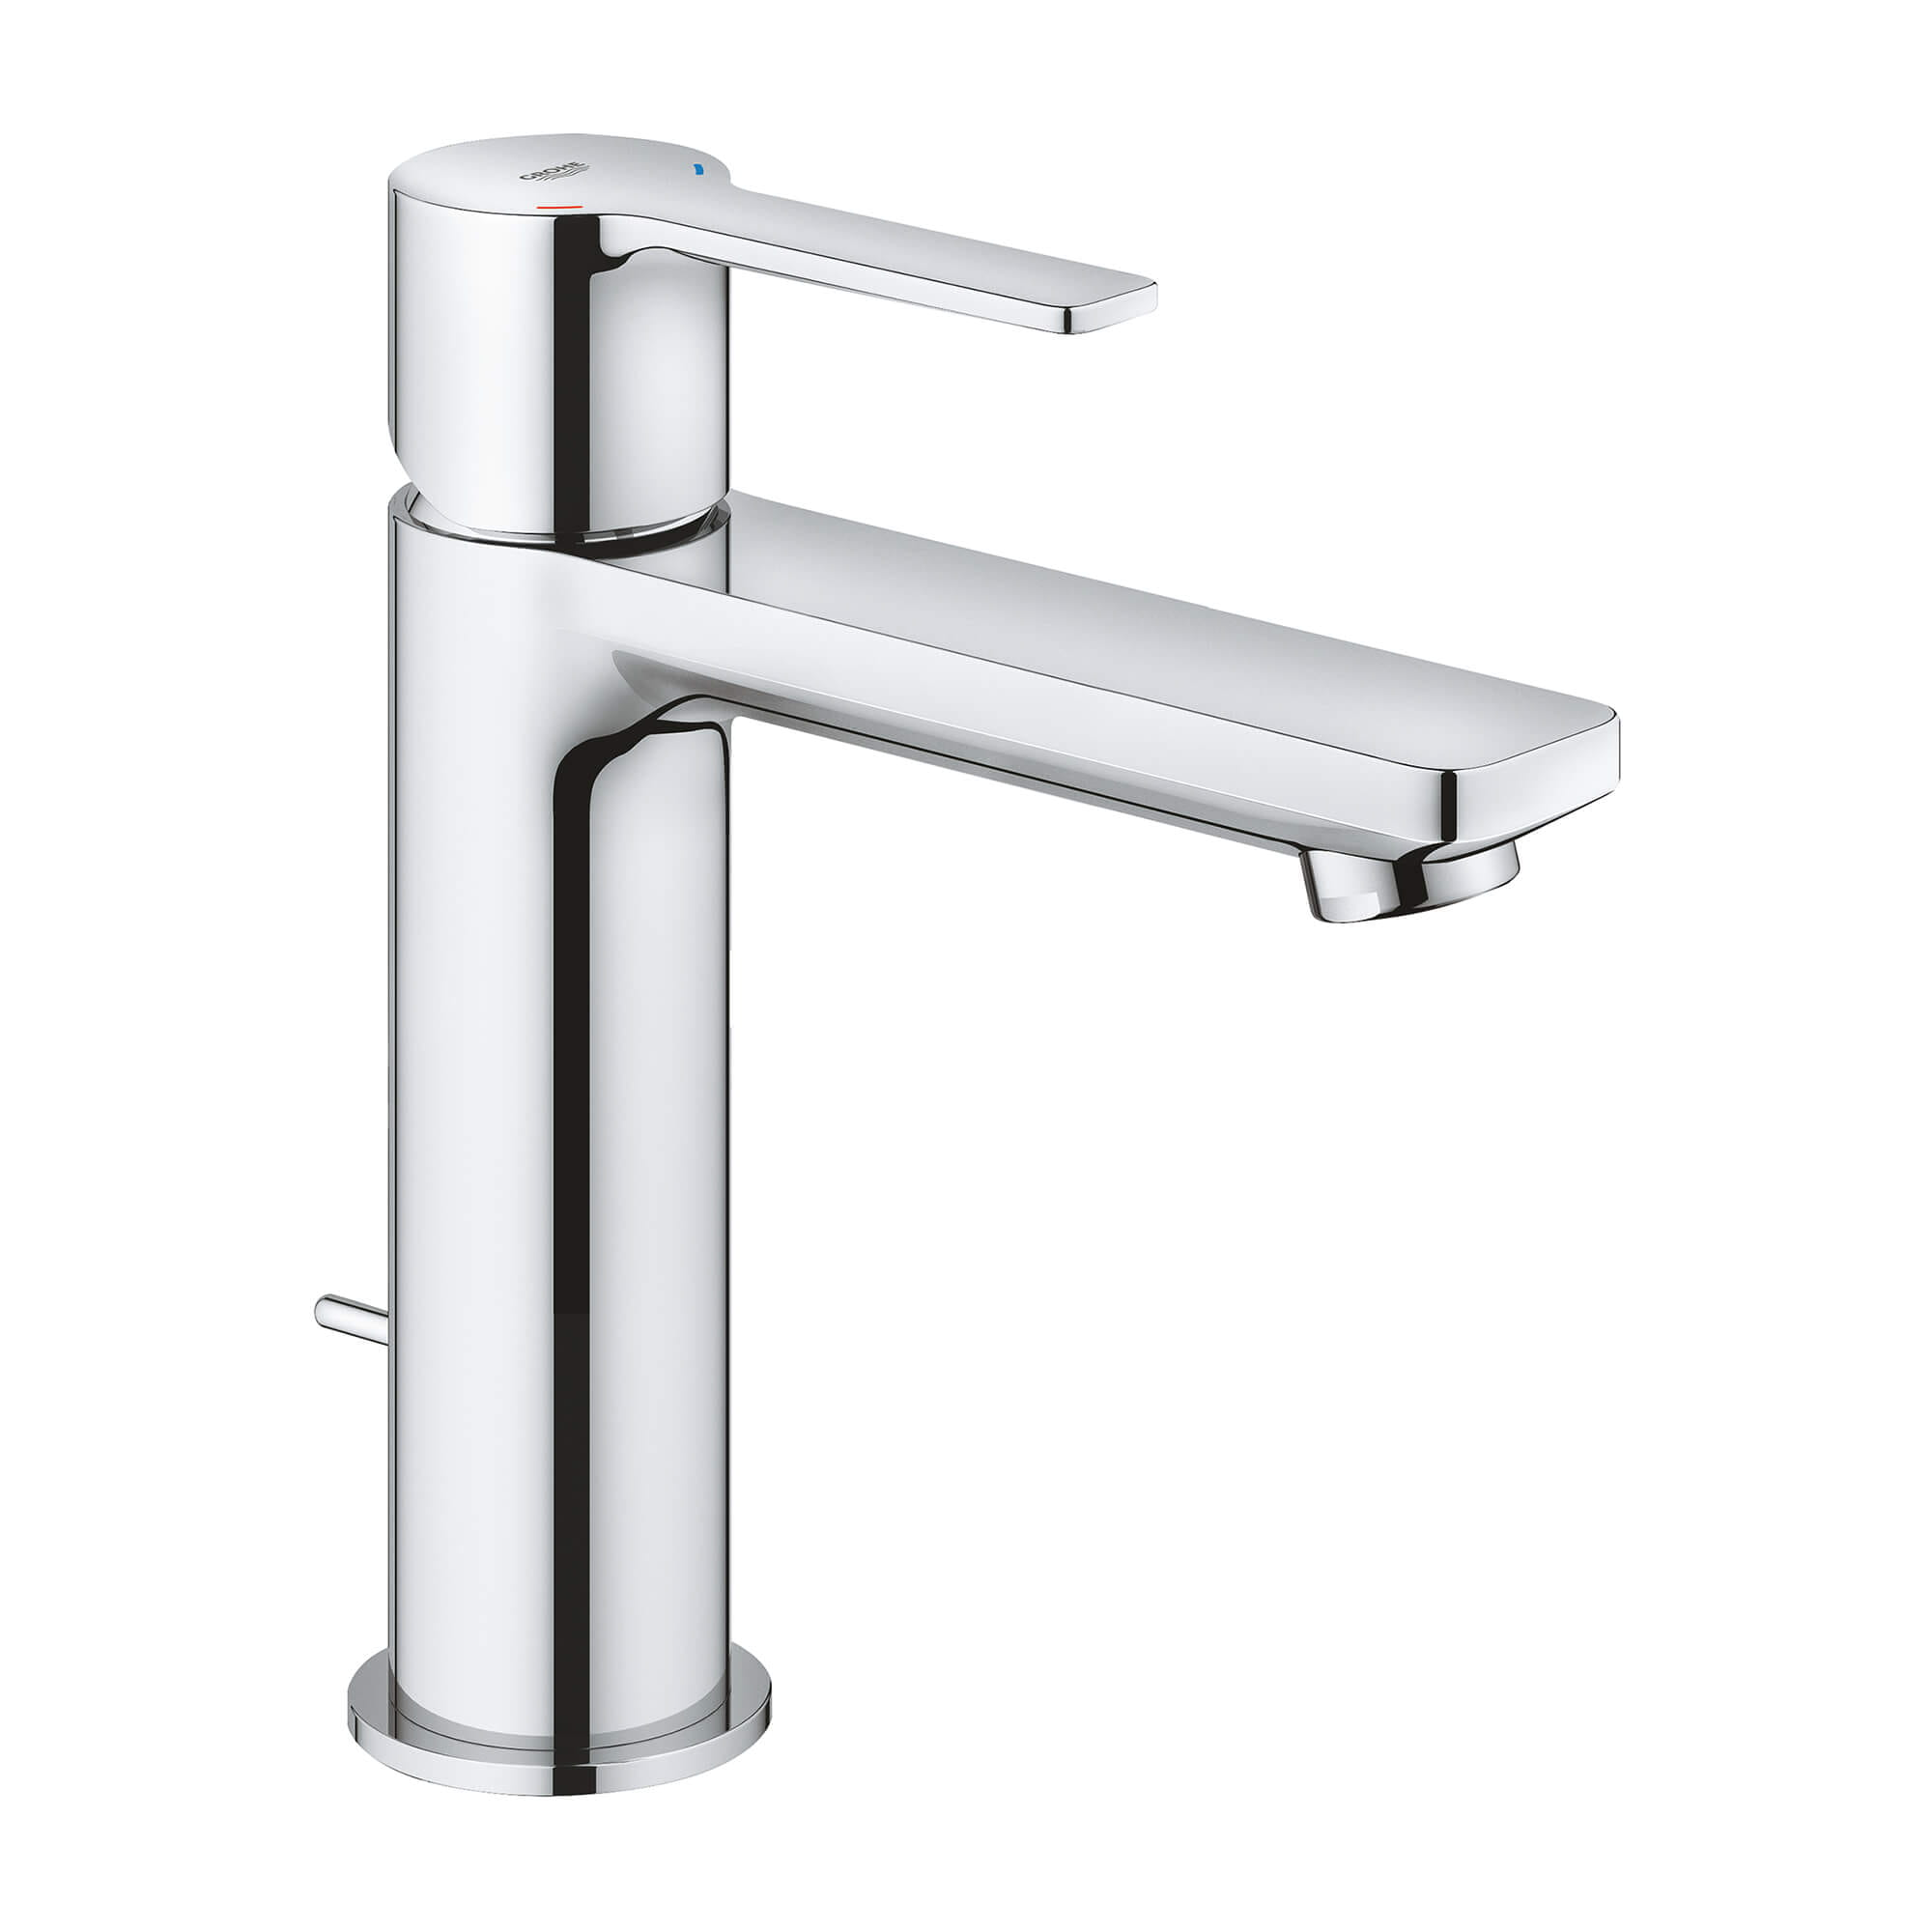 """Single hole installation GROHE SilkMove 1.1"""" (28 mm) ceramic cartridge Quick installation system Swivel tubular C-spout with flow control Stop limiter Push-open 1 1/4"""" (32mm) waste set Stainless steel flex lines Flow rate: 1.2 gpm (4.5 l/min) Energy Polic-related"""